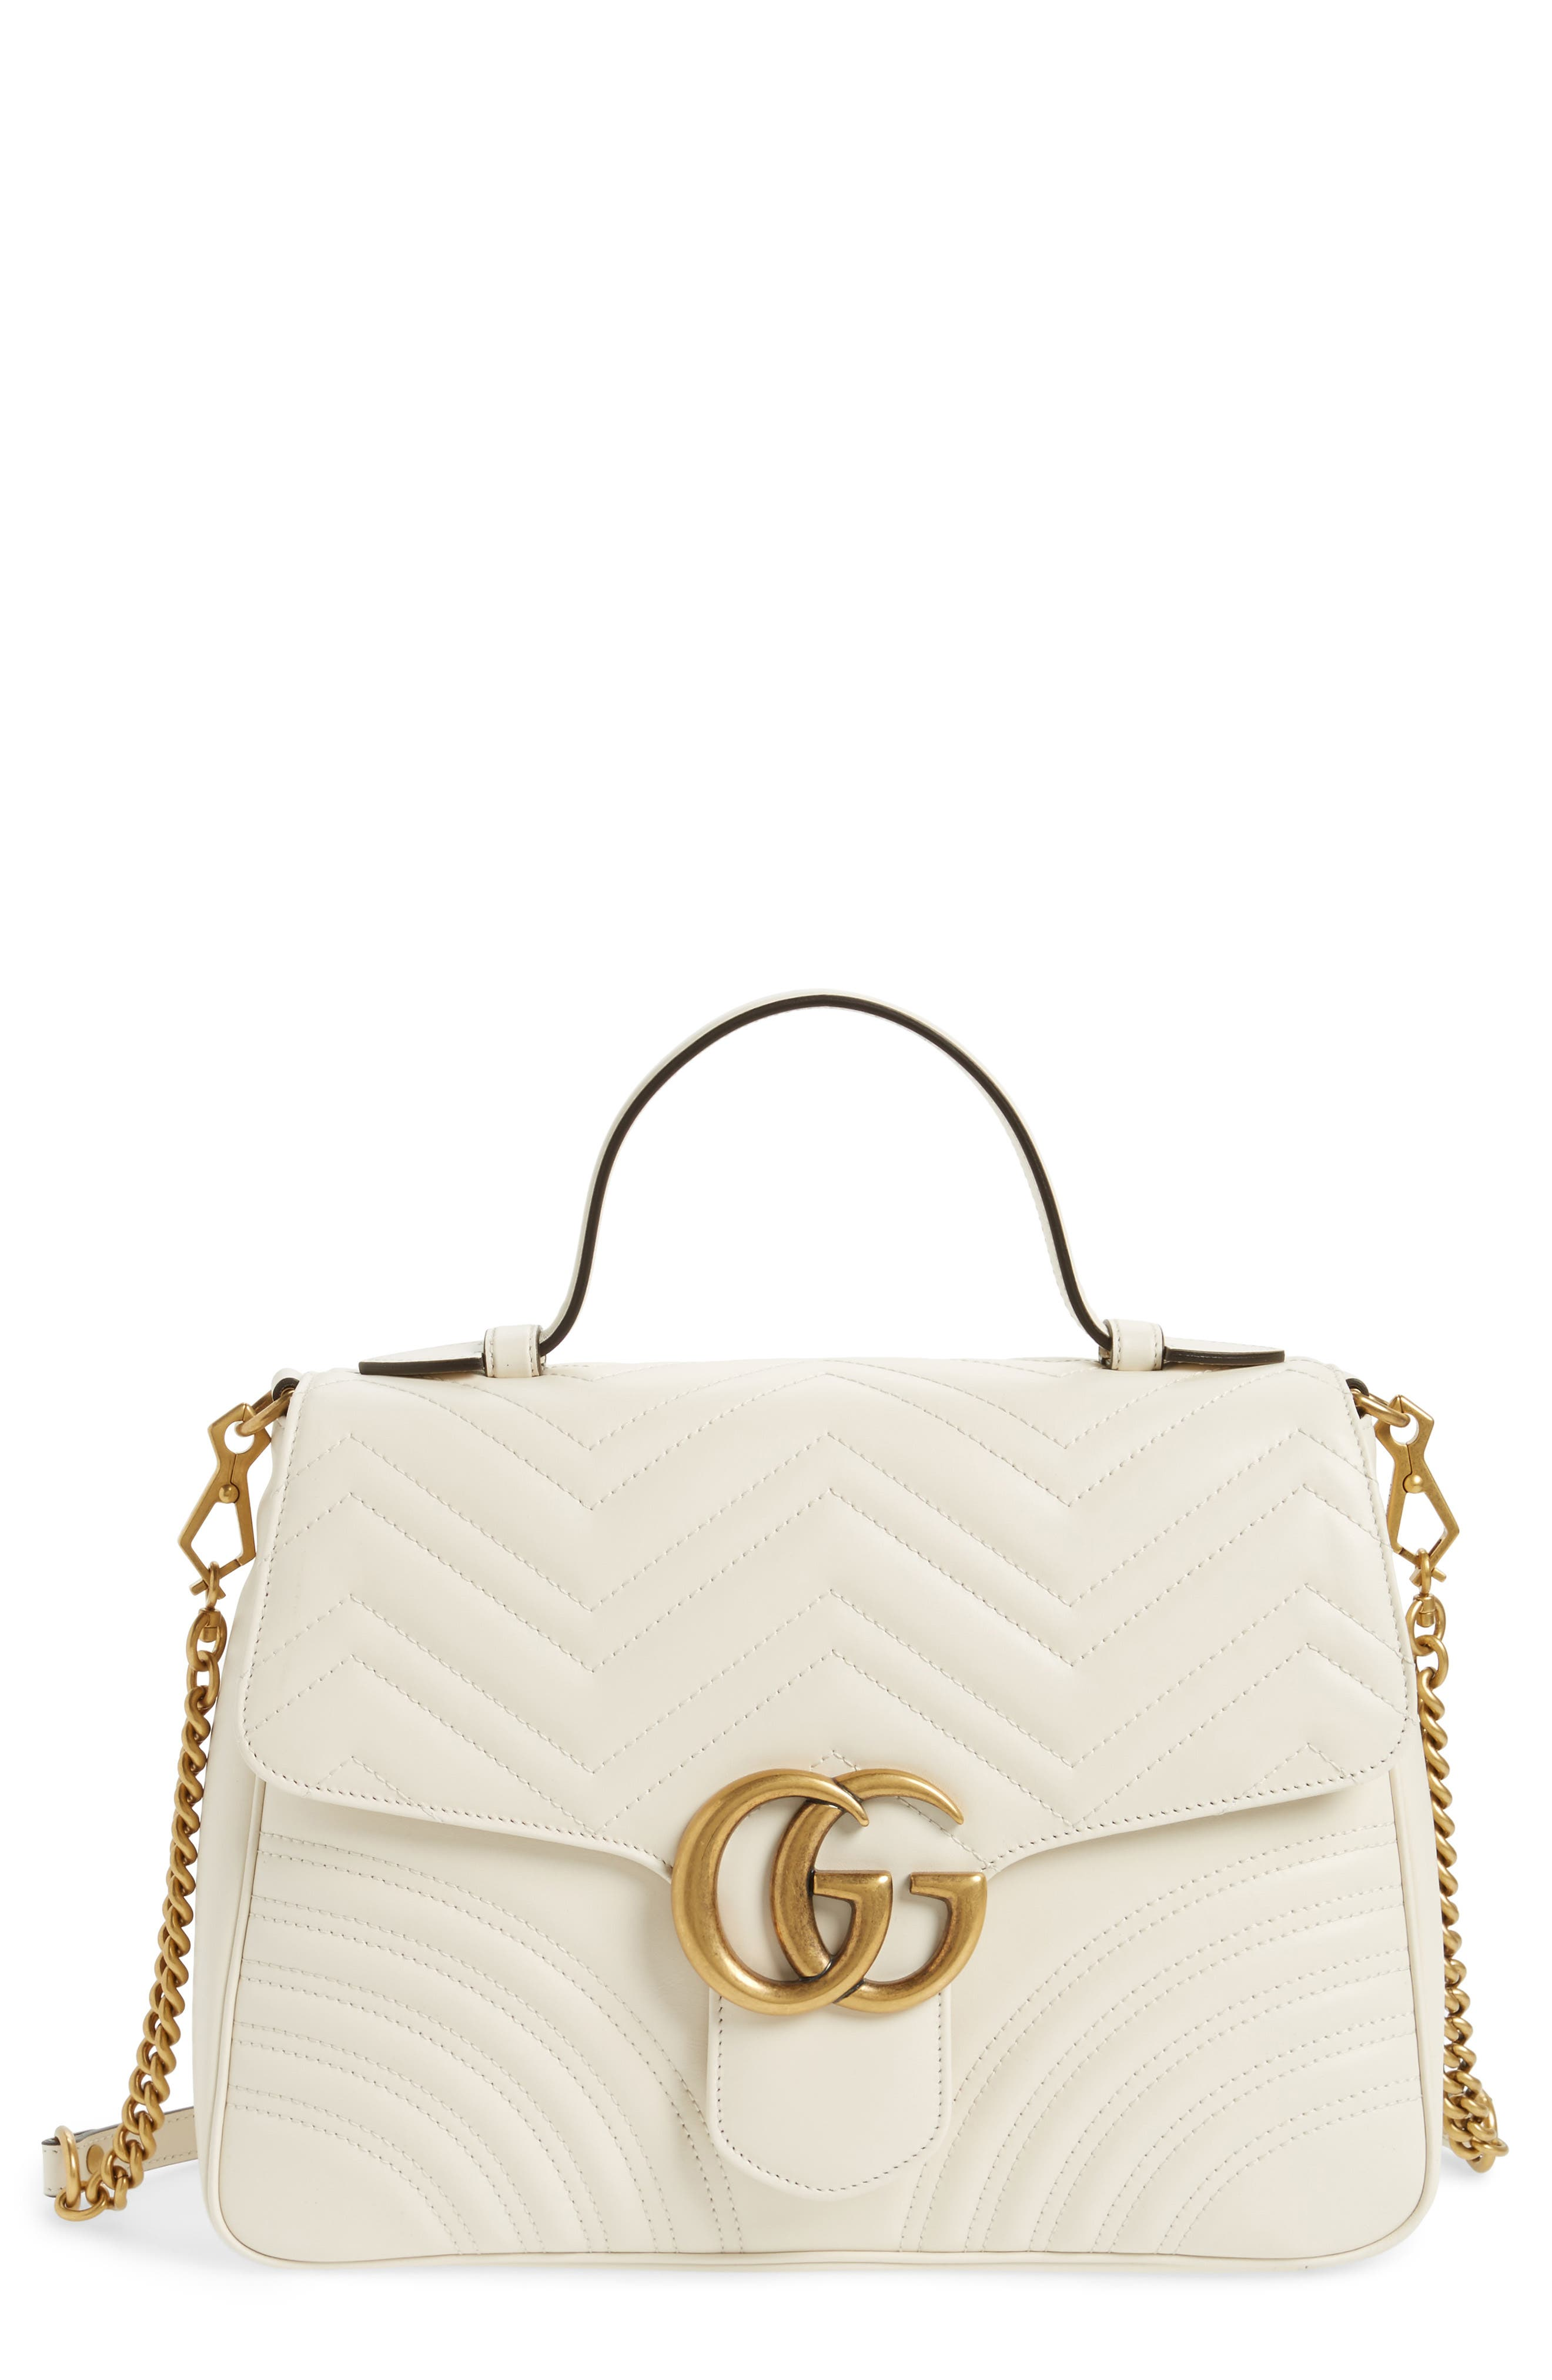 Main Image - Gucci Medium GG Marmont 2.0 Matelassé Leather Top Handle Bag